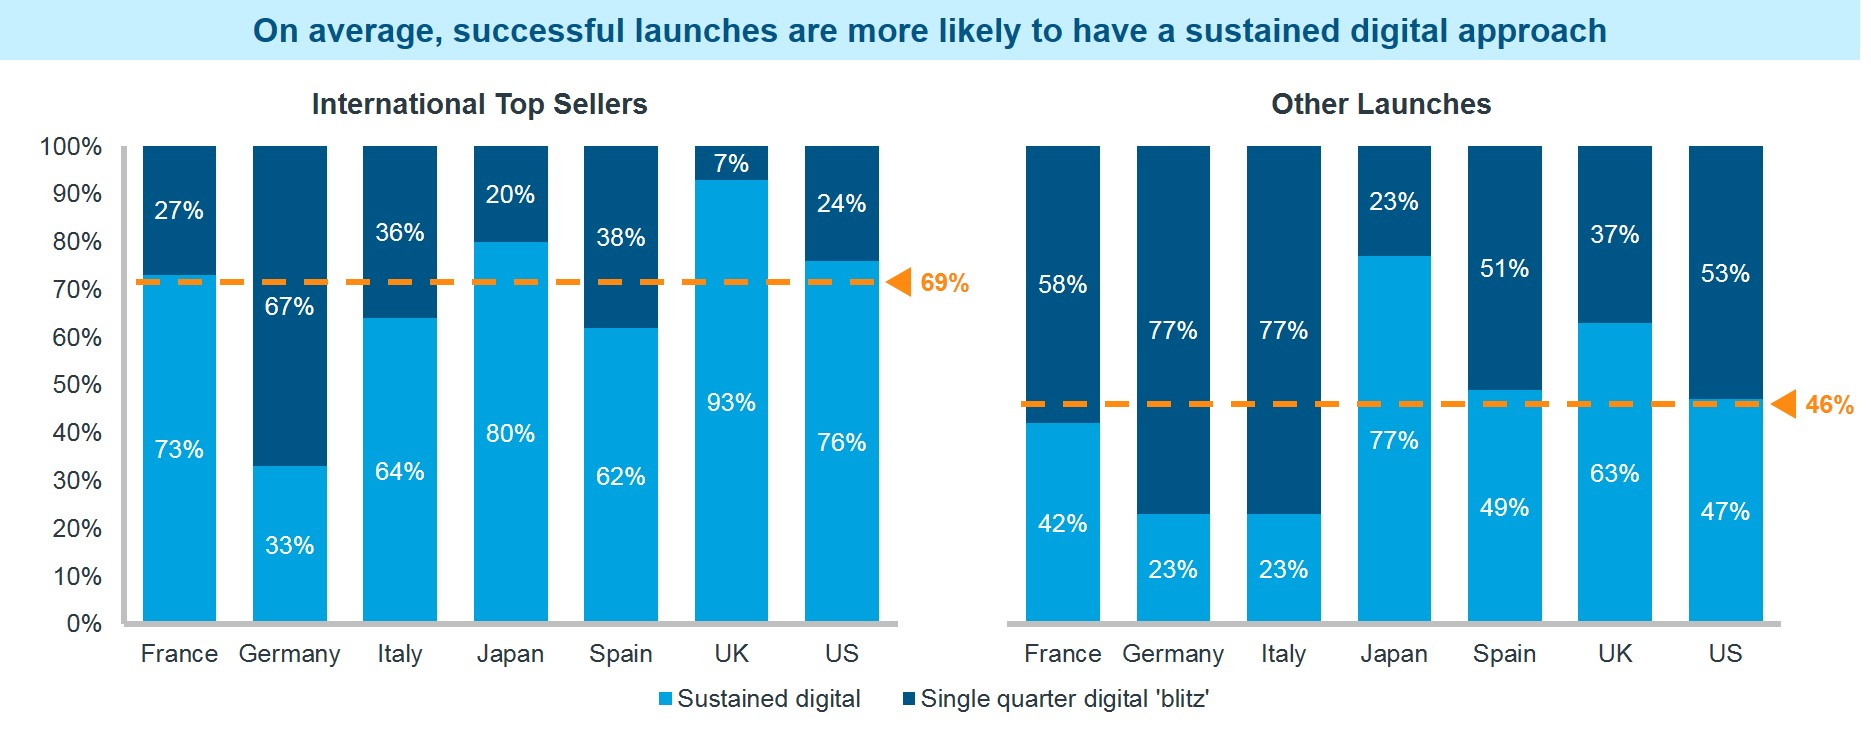 successful launches and sustained digital approach